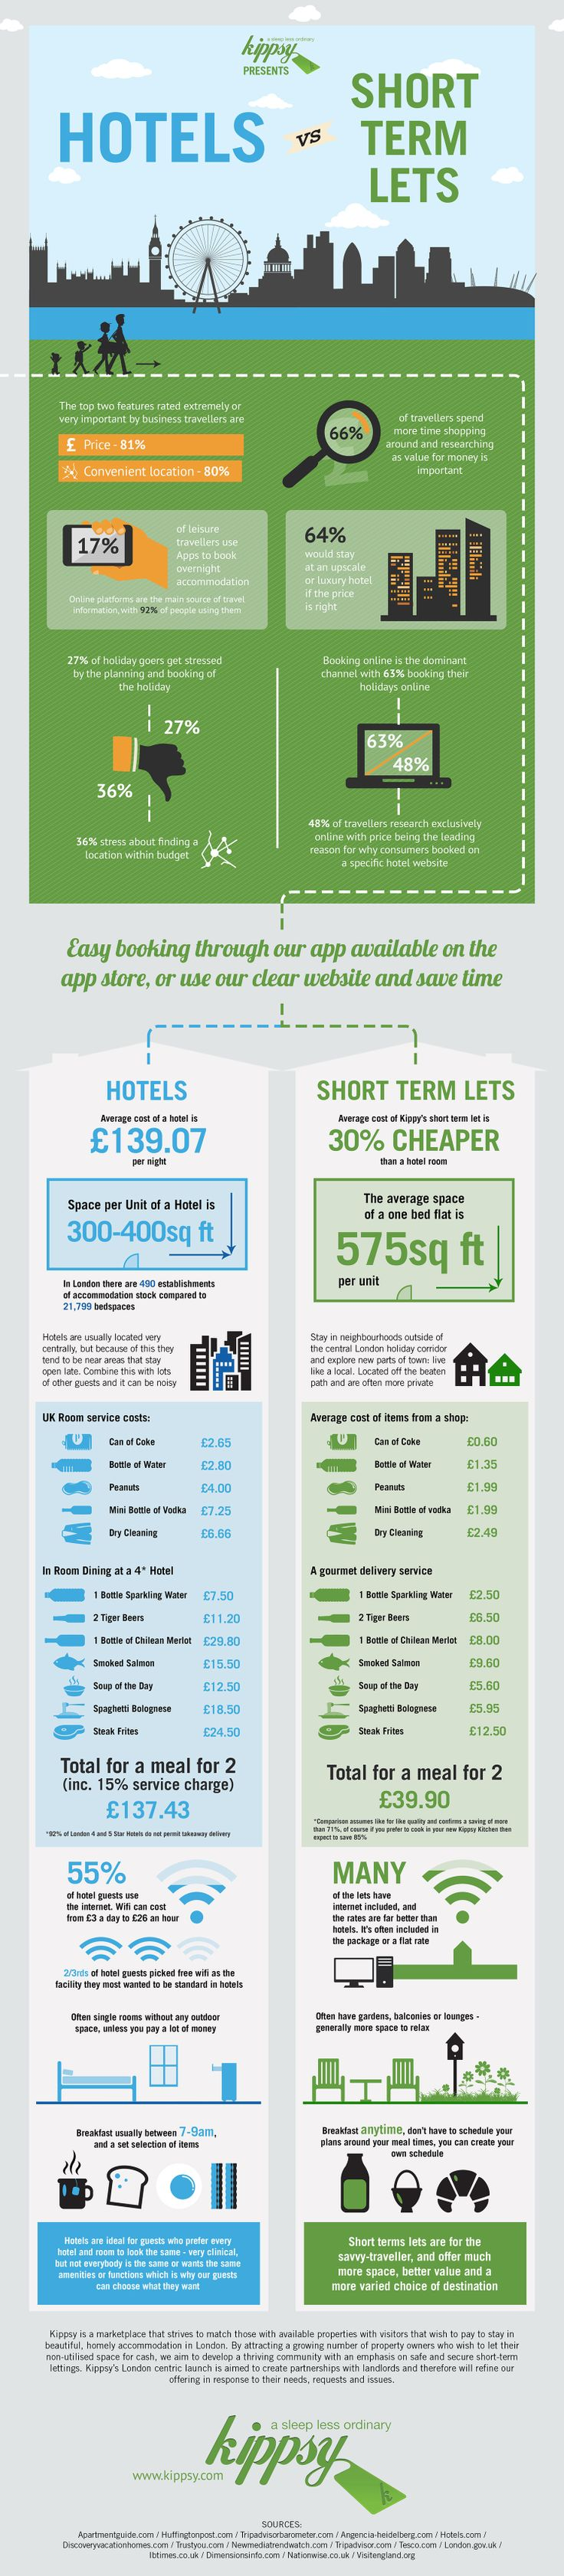 Travelling to London? A Kippsy apartment could be the answer, check out the Hotels vs. Short term lets infographic. Follow this dedicated link to get £25 off your Stay with Kippsy and chose from over 1000  Central London Apartments available from a single night - You discount will be awarded on checkout - http://kippsy.com/?tdpr=AprilOffer